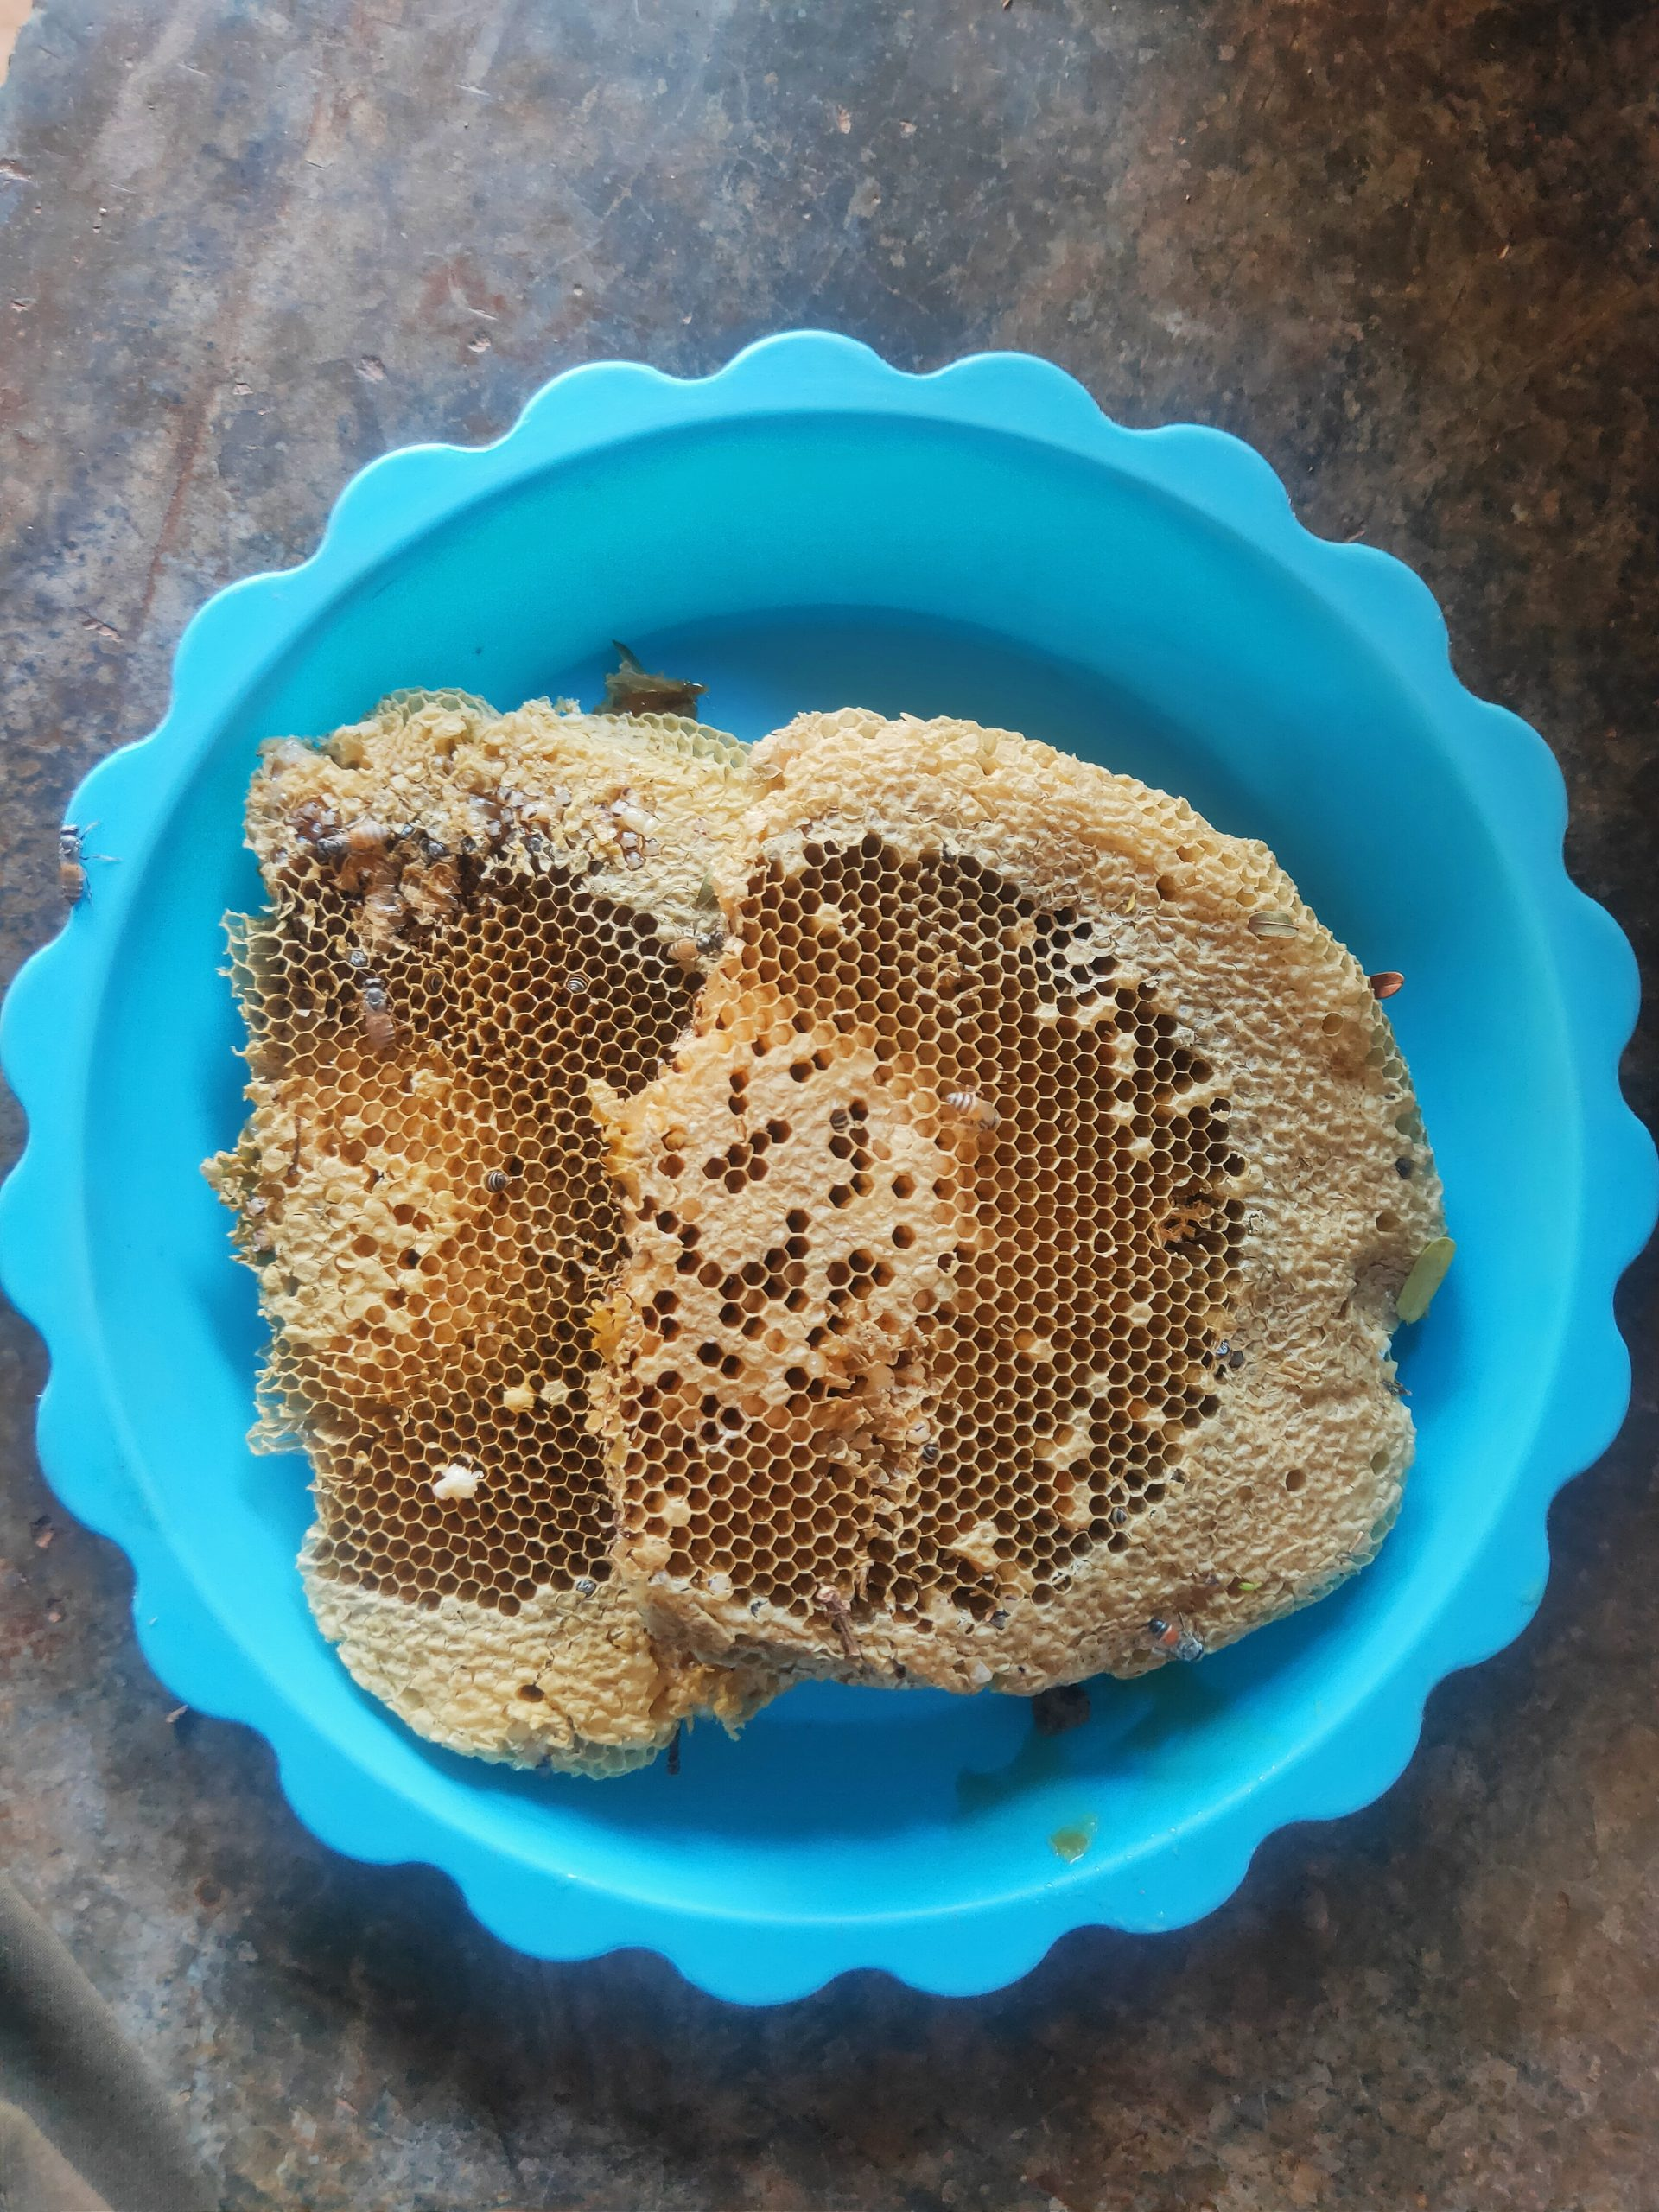 Beehive pieces in a bowl